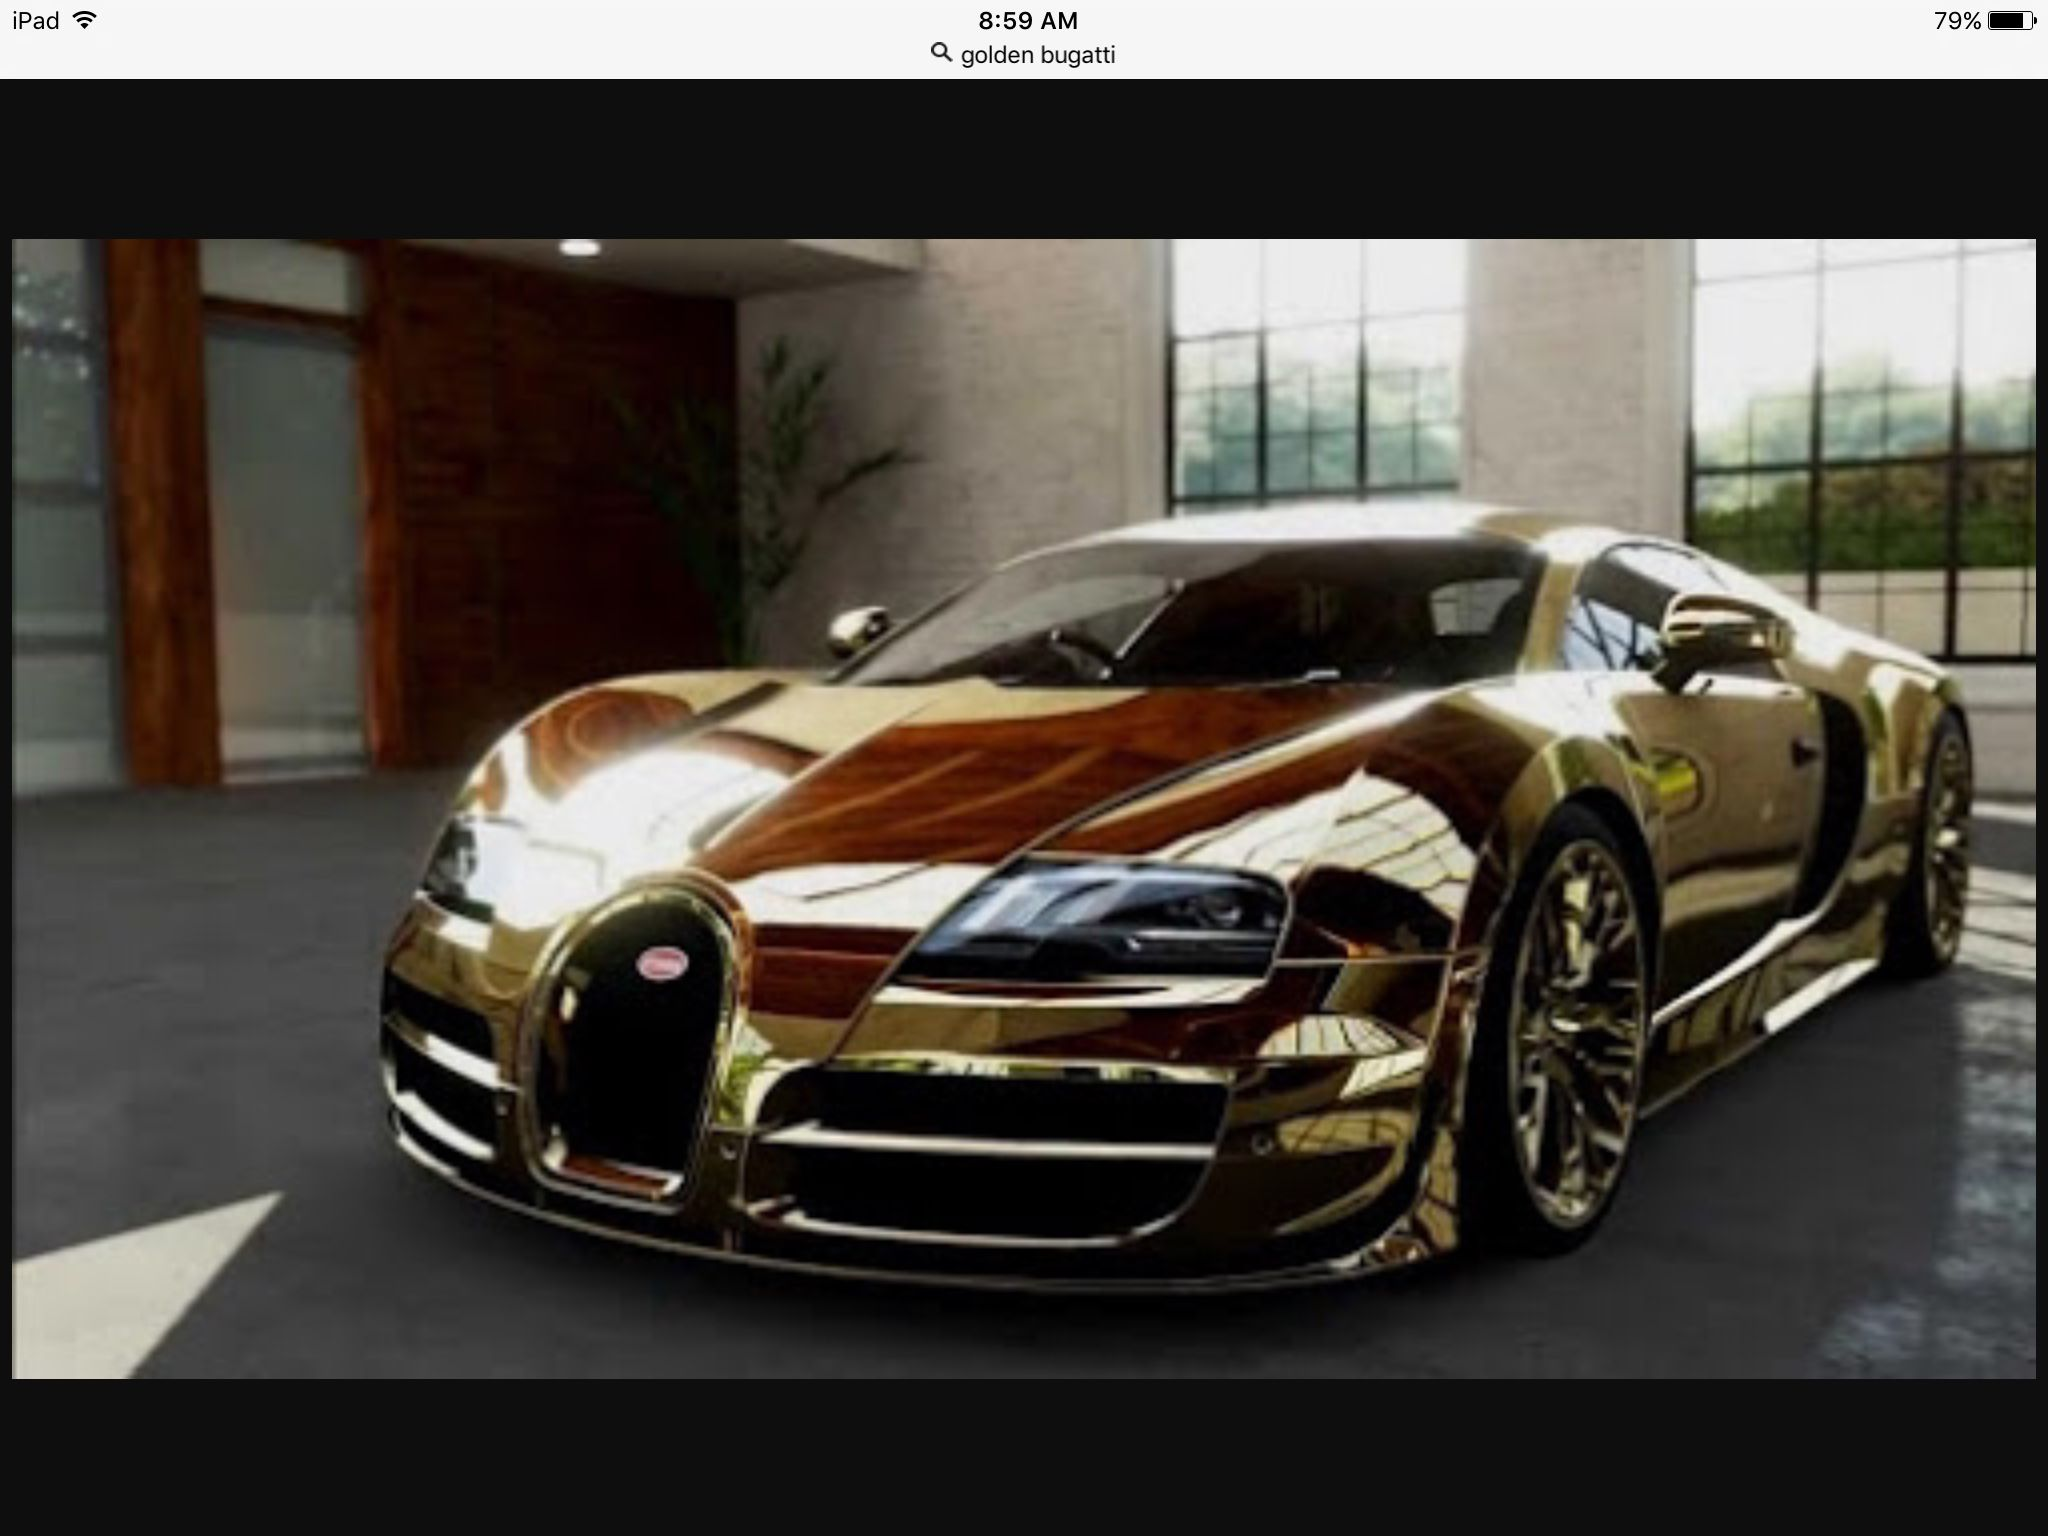 f4136b0354d03c96013ce9f74cd268fa Exciting Bugatti Veyron Cost for Oil Change Cars Trend